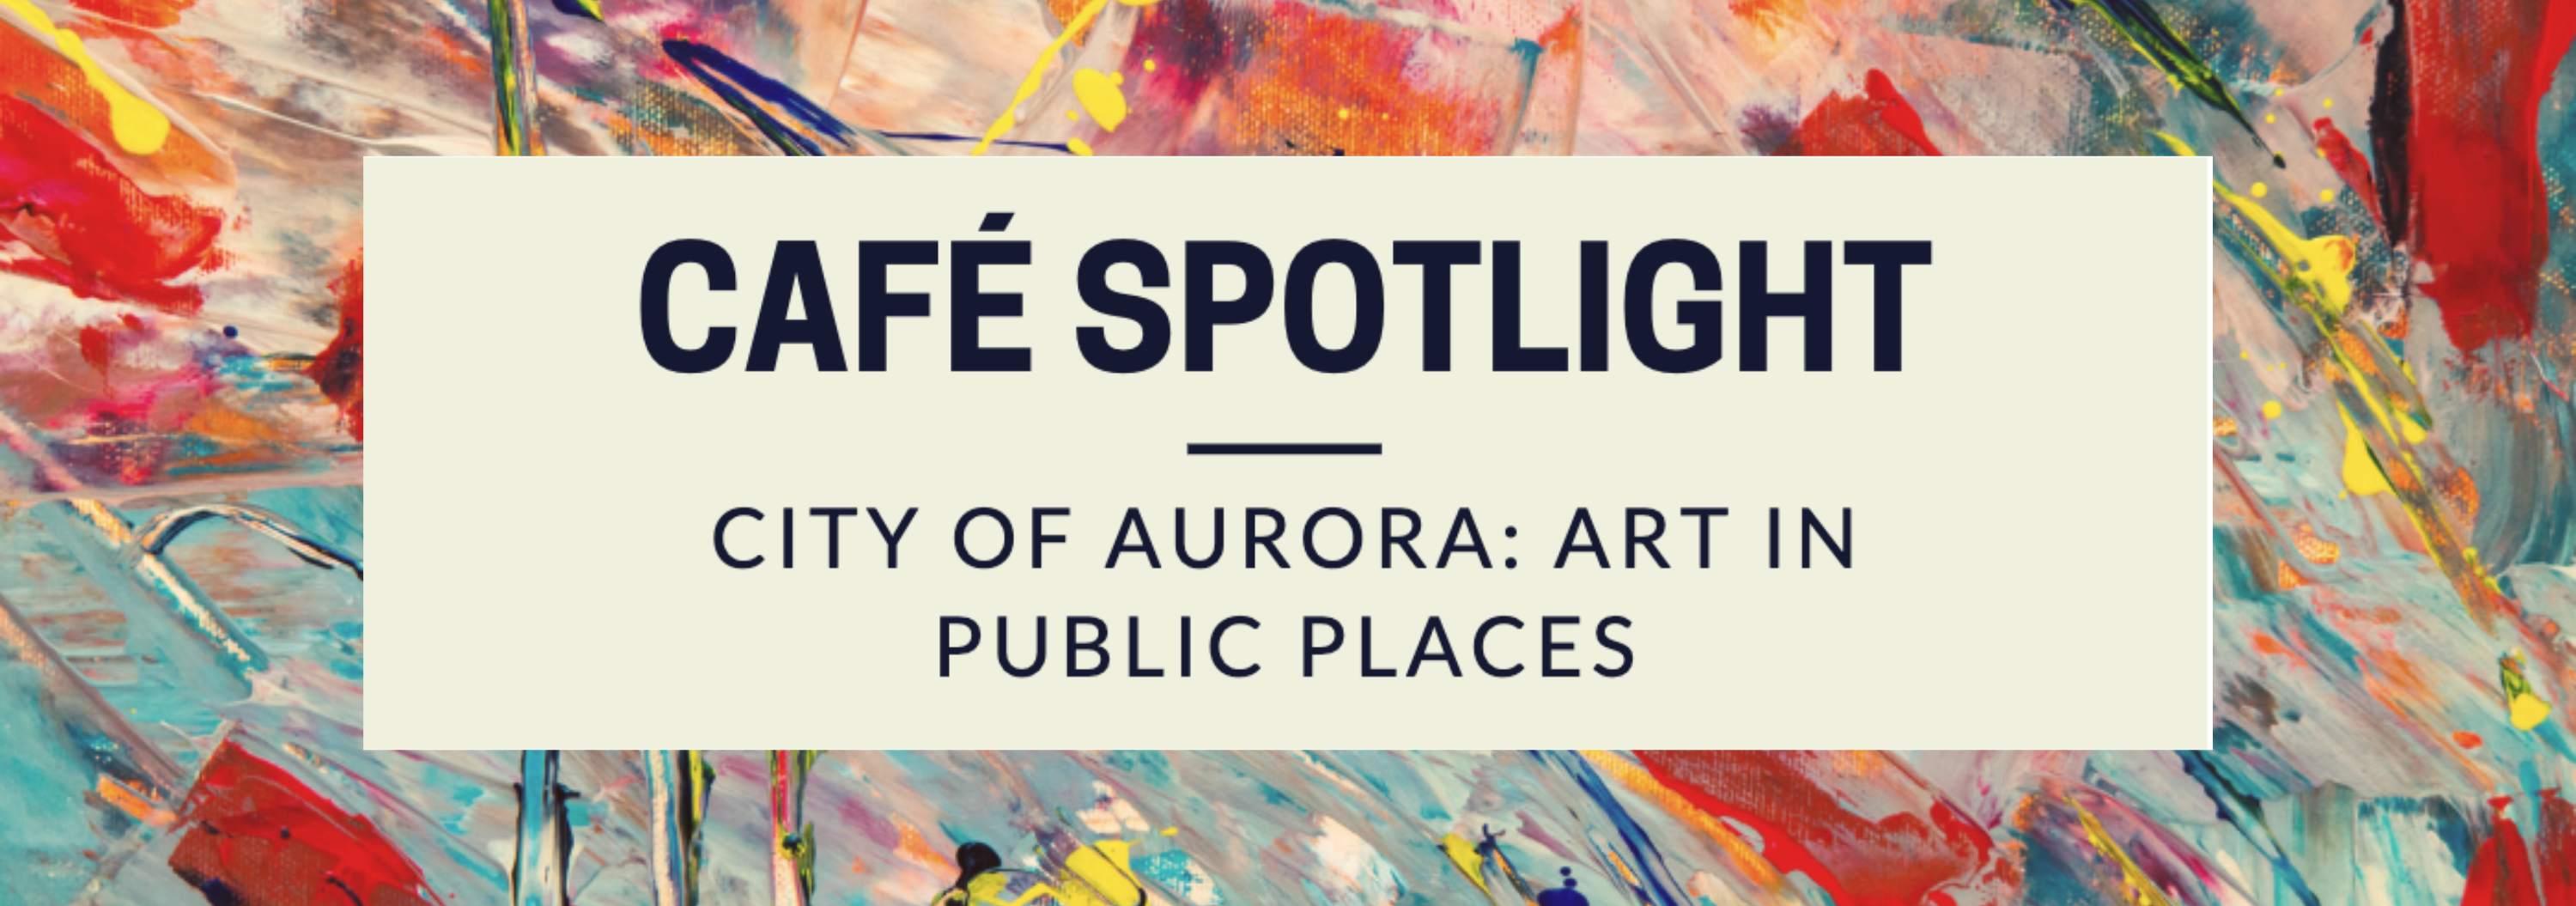 CaFE Spotlight - City of Aurora: Art in Public Places